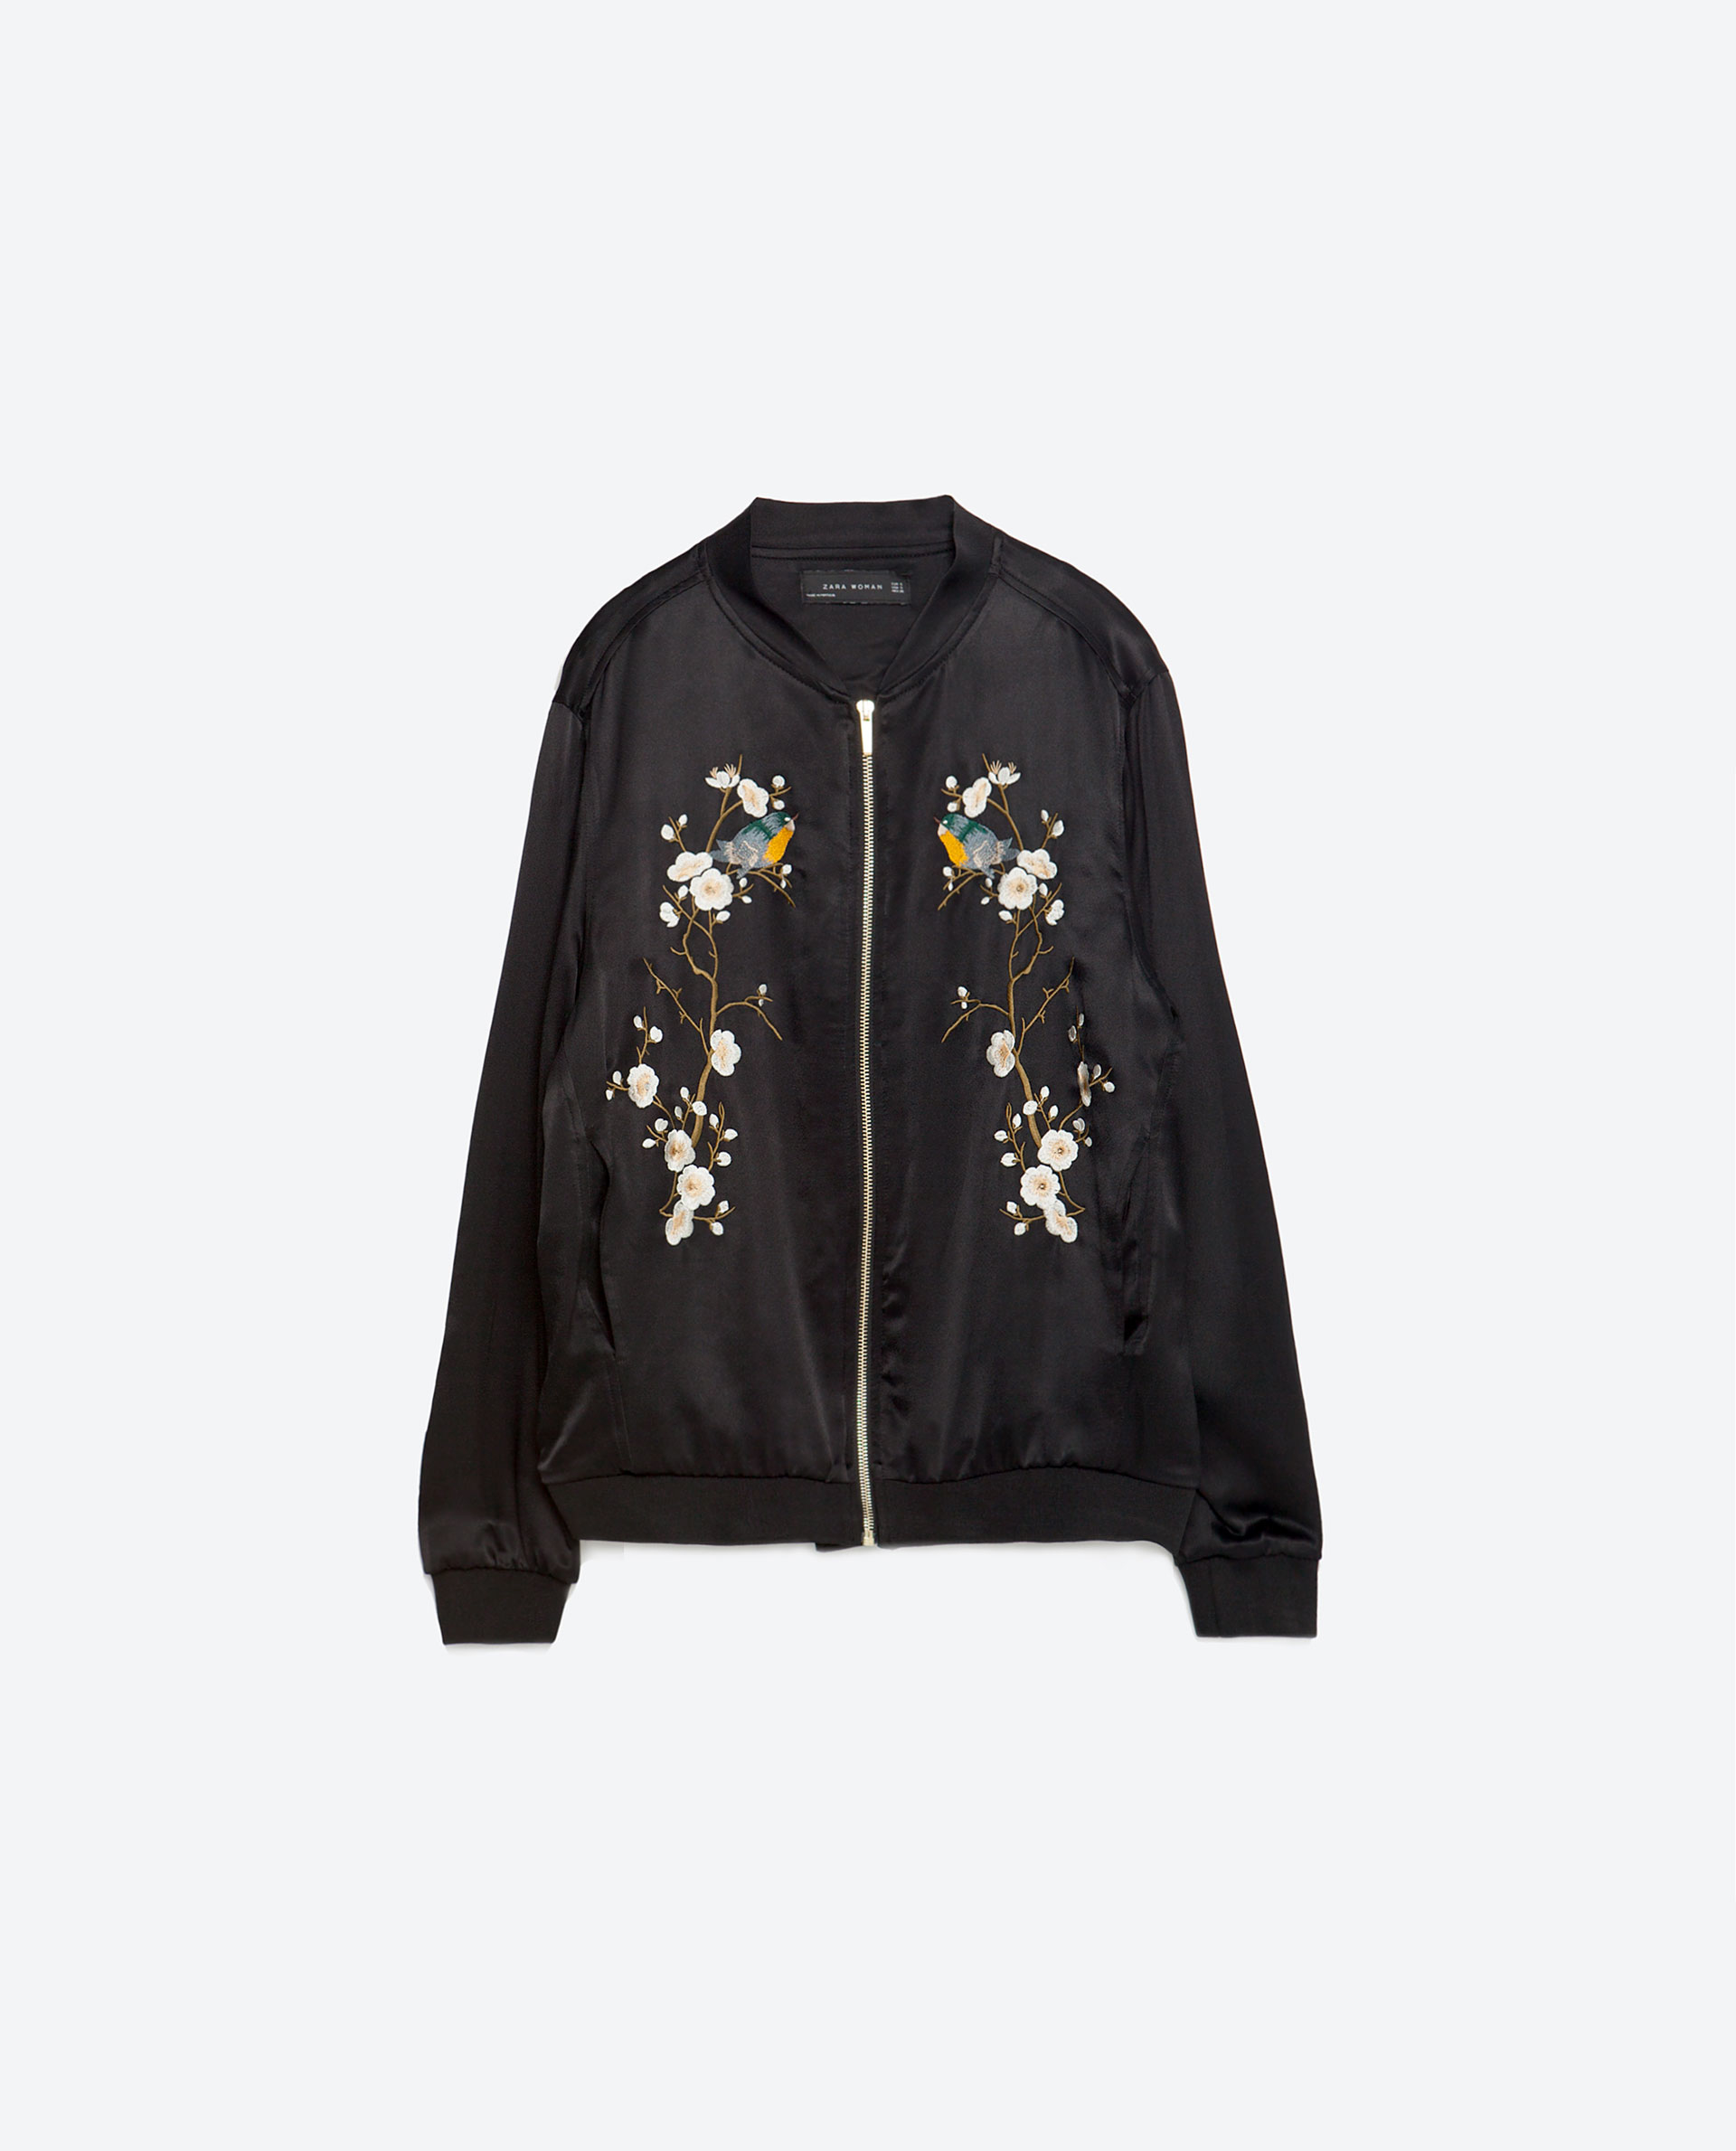 Zara floral embroidered bomber jacket lyst